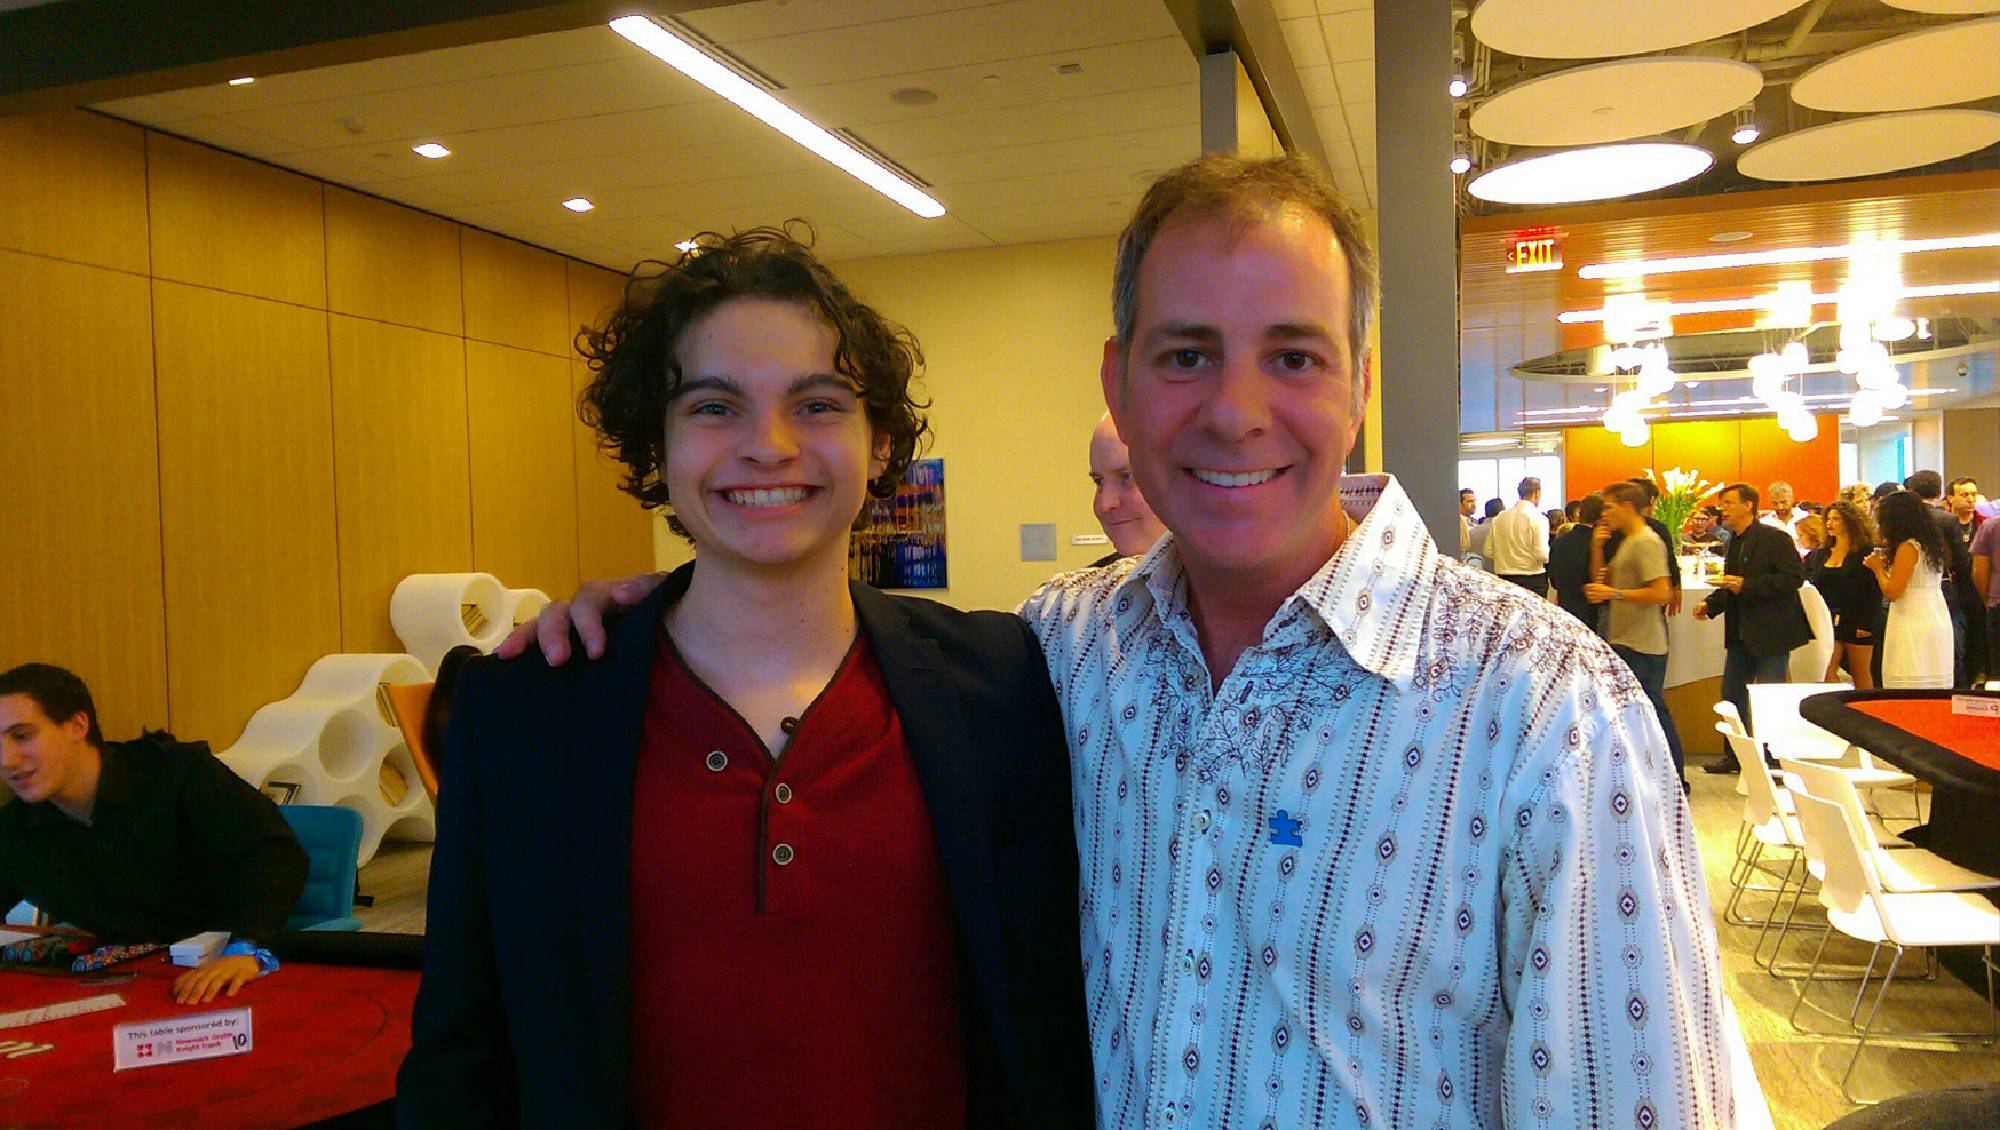 Max Burkholder and Philip Warbasse